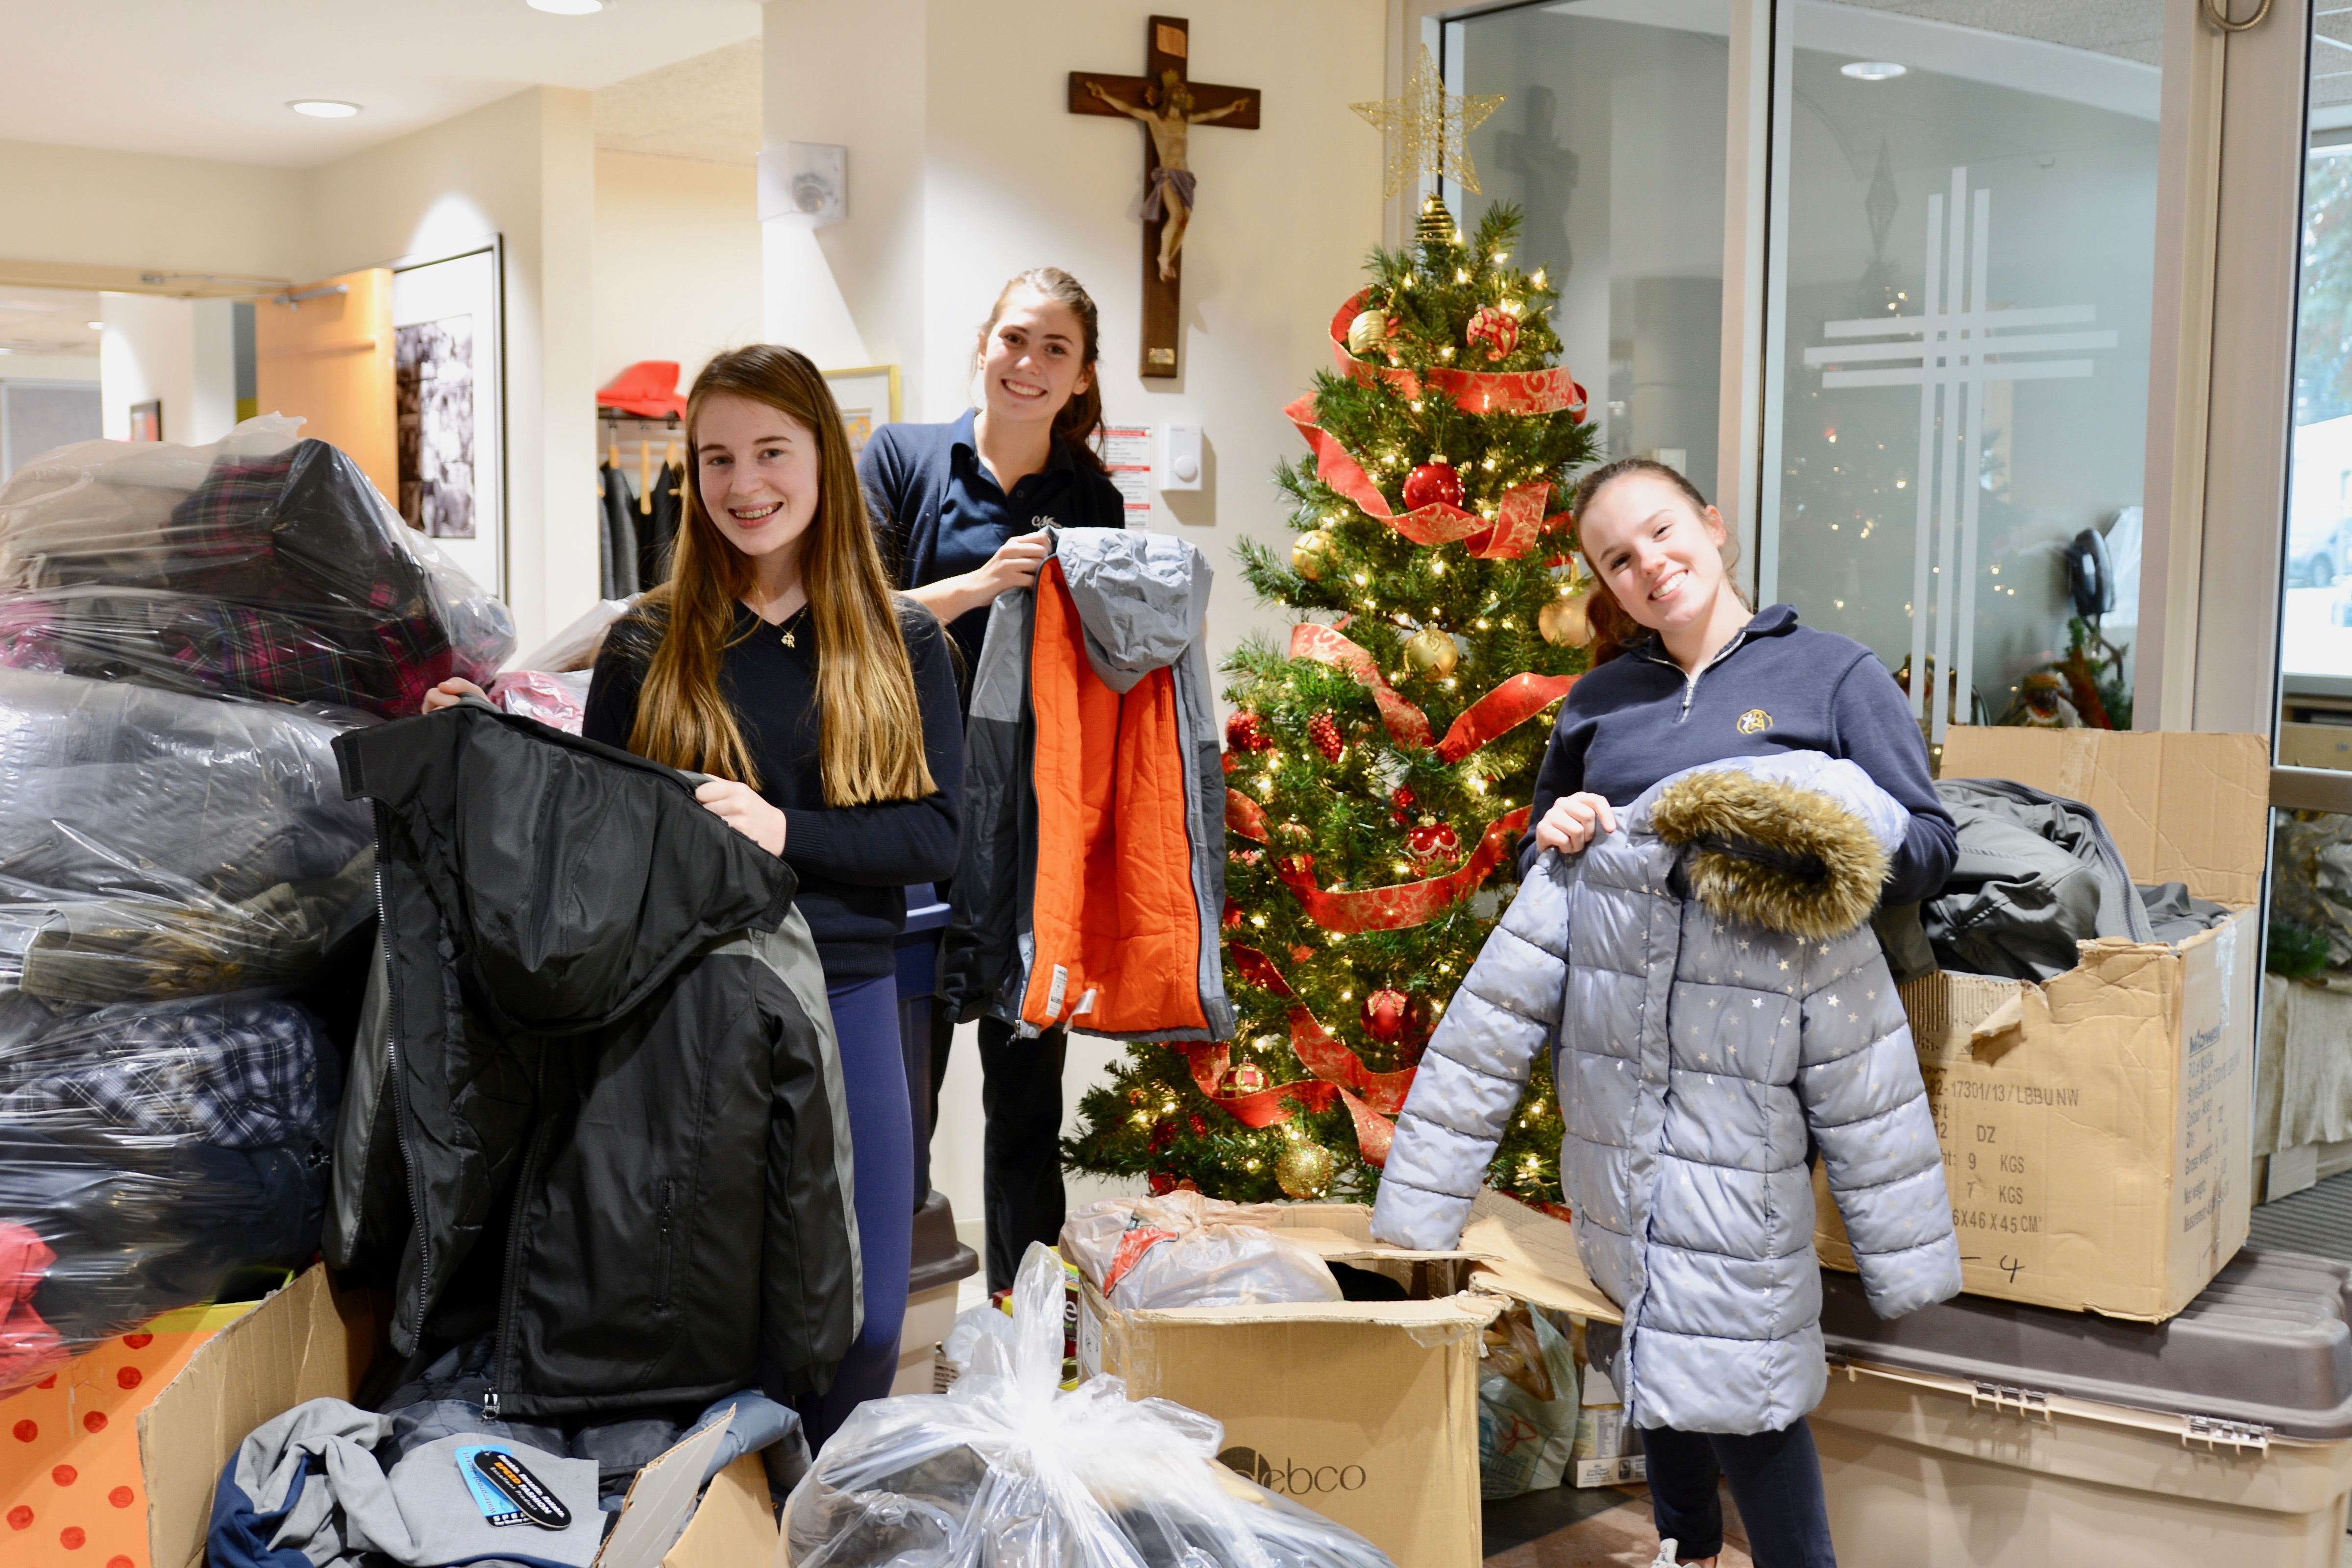 Student Senate members Kira Gouchie and Megan Santi along with fellow student Kendra Brown stand proudly with coat and winter donations. The donations will help families in need this holiday season!